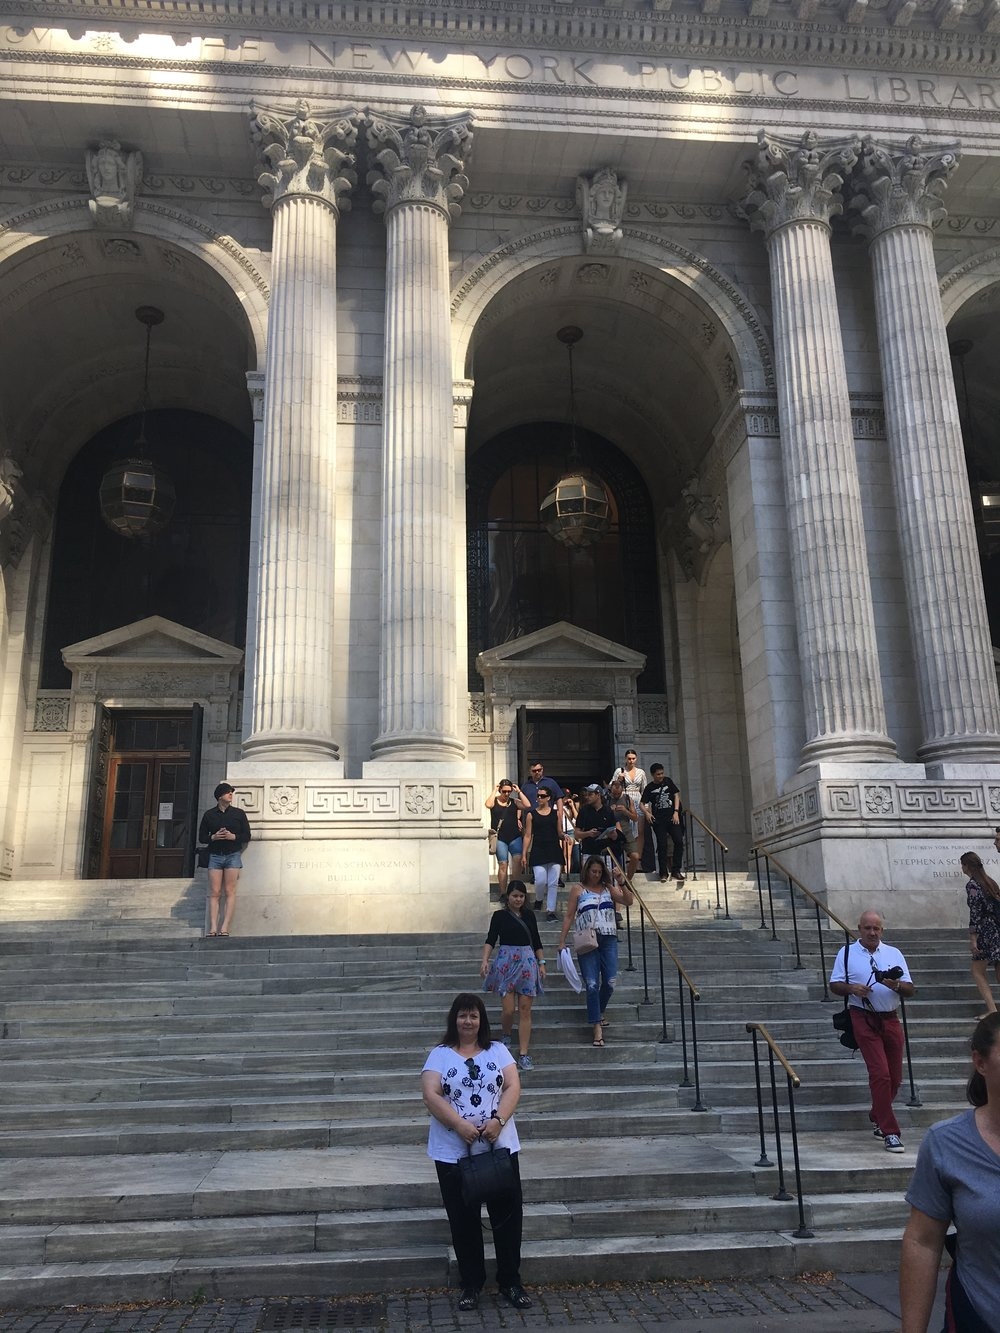 Outside the New York Public Library - where I would write my next book if I lived in NYC.